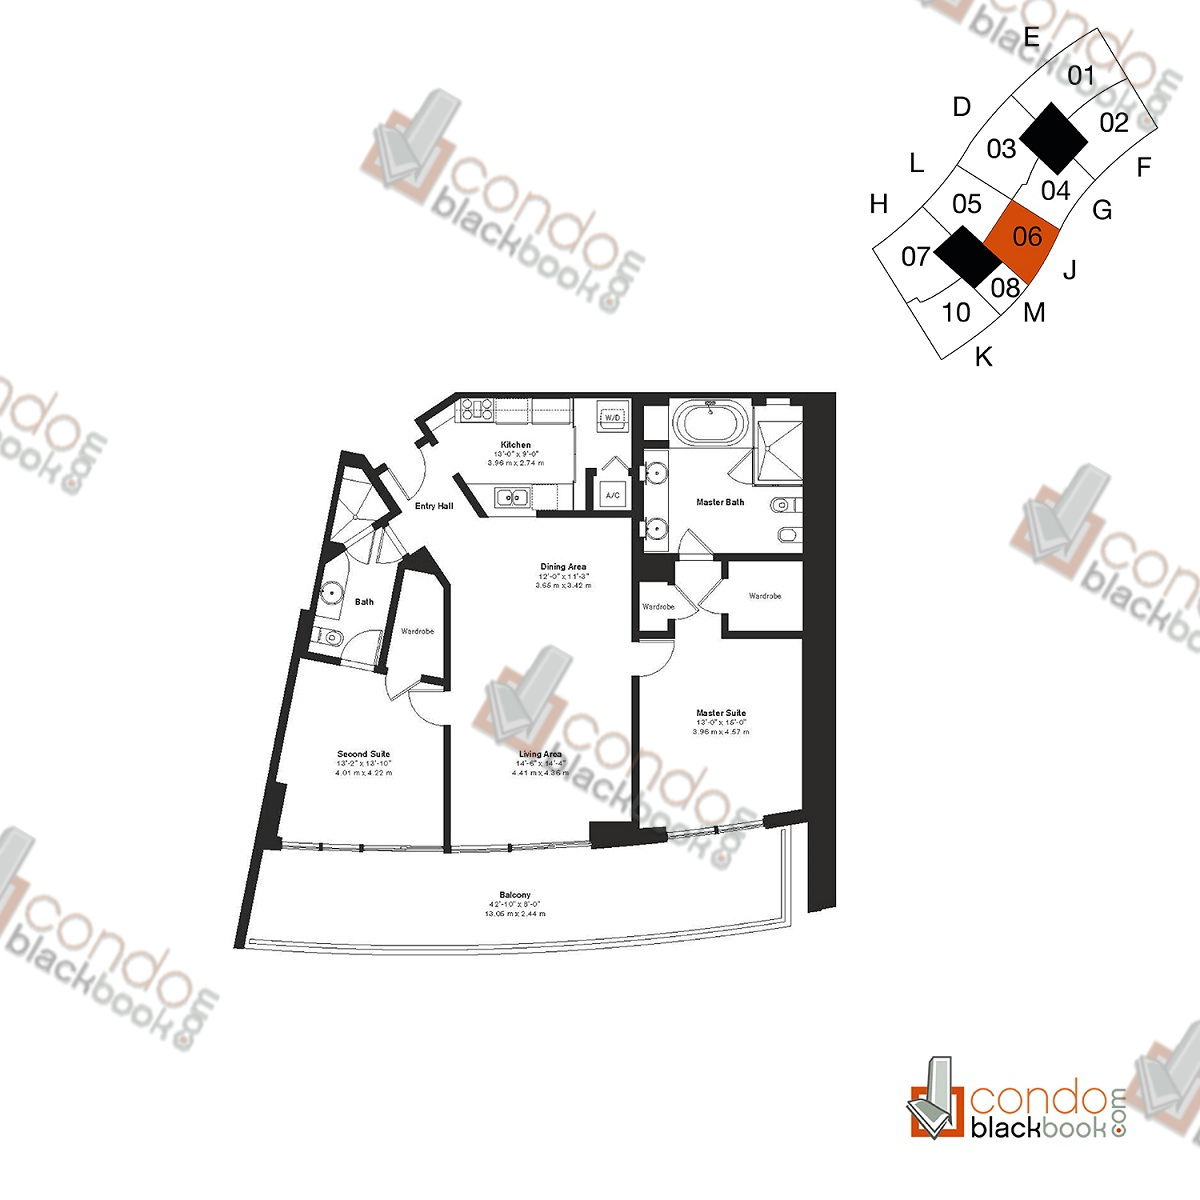 Floor plan for ICON South Beach South Beach Miami Beach, model Residence J, line 06, 2/2 bedrooms, 1,452 sq ft